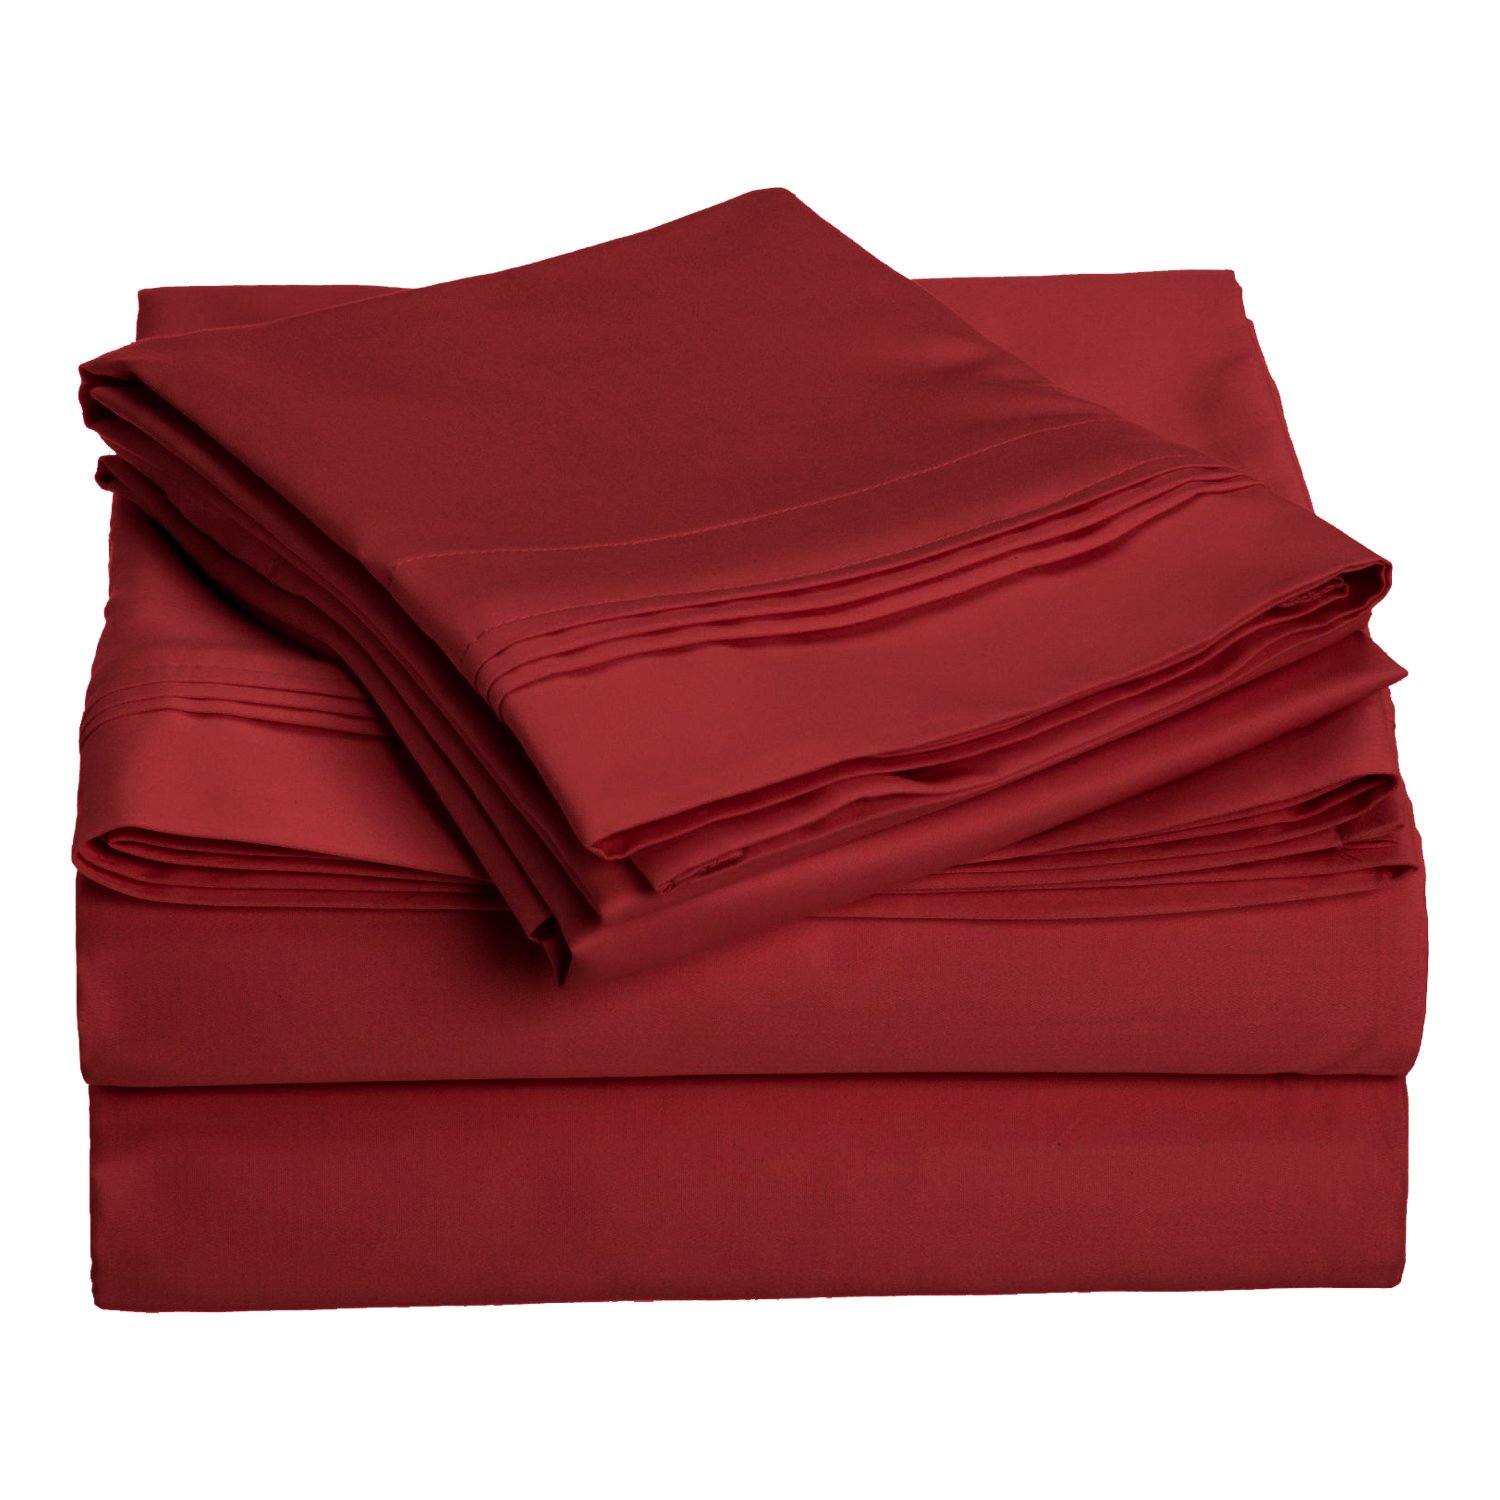 Burgundy California King 1000 Thread Count 100% Egyptian Cotton, King Bed Sheet Set, Single Ply, Solid, Light bluee